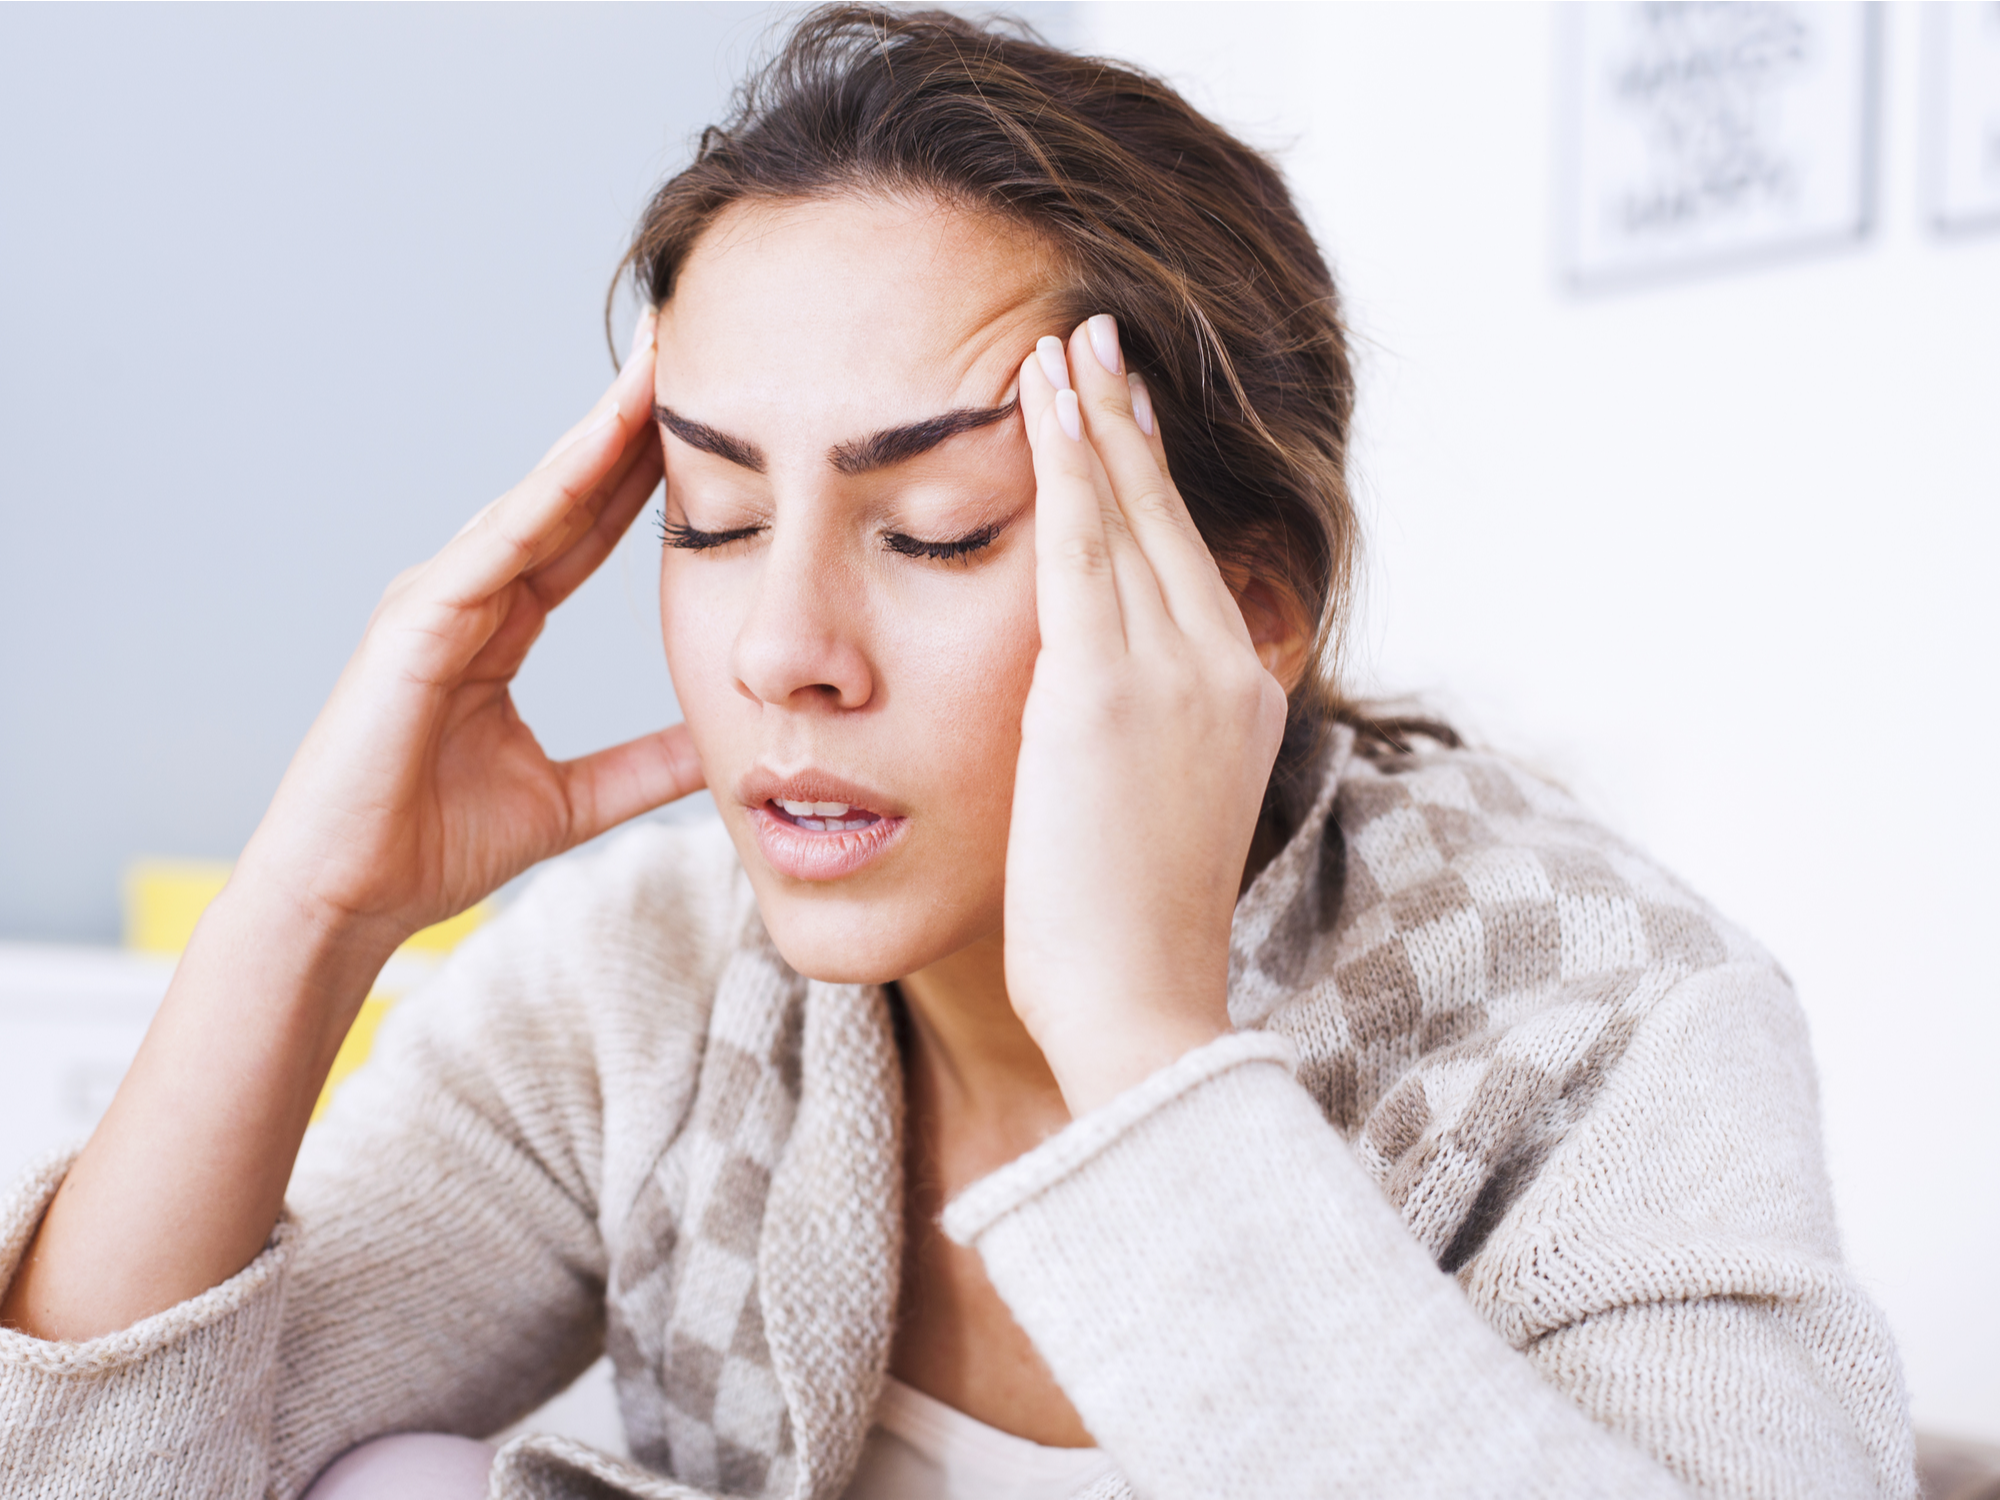 How Chiropractic Care Can Help with Headaches and Migraines